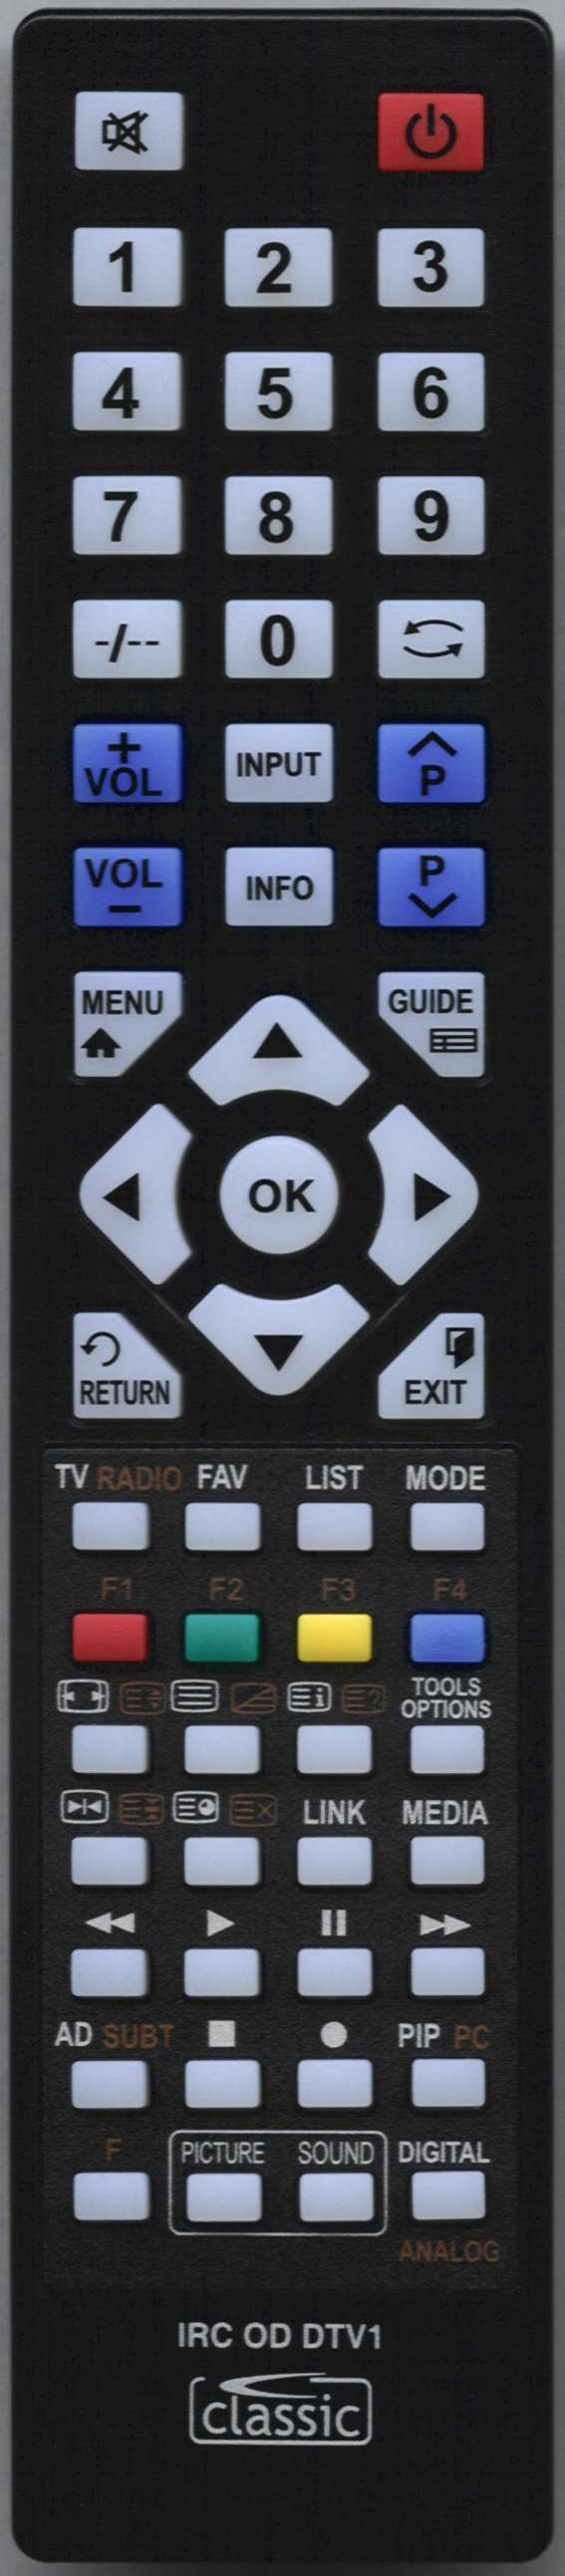 BLAUPUNKT 43/134M-GB-11B-FEGUX Remote Control Alternative